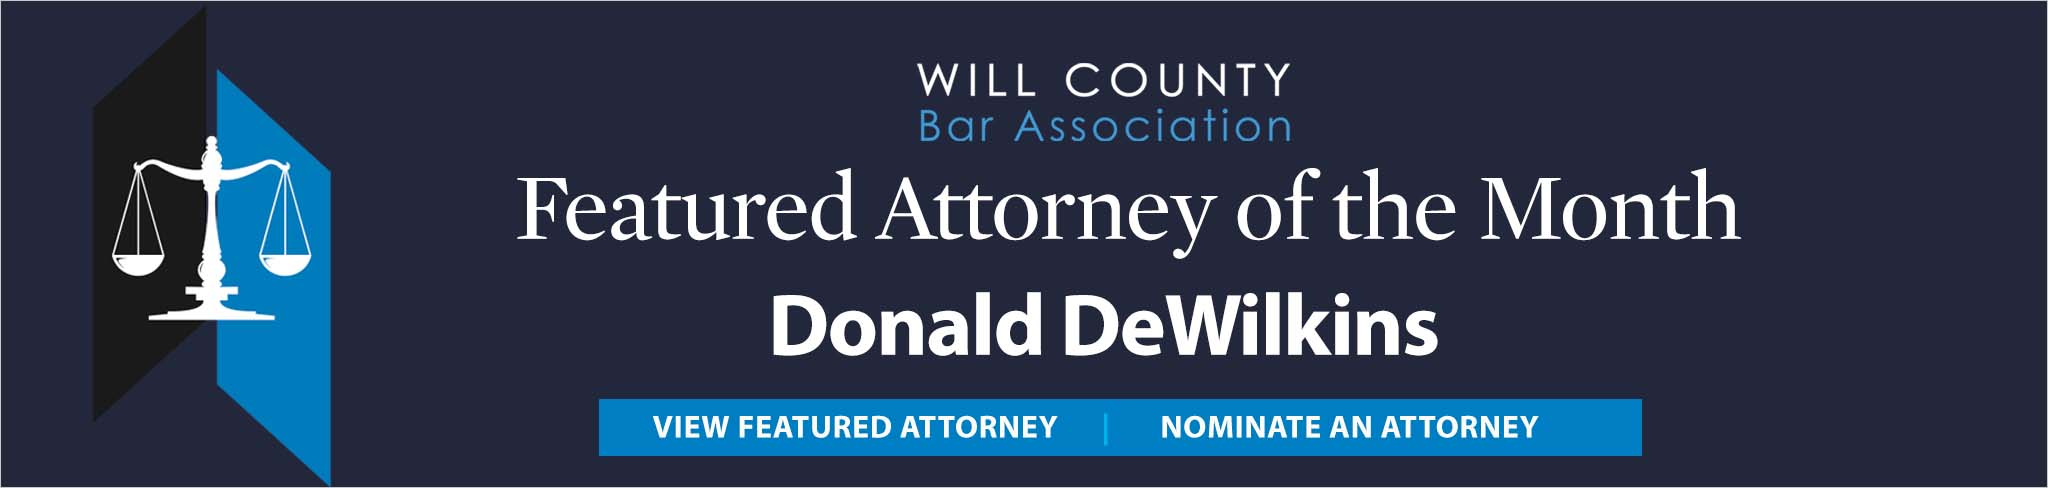 Feature Attorney of the Month Donald DeWilkins Sept. 2021